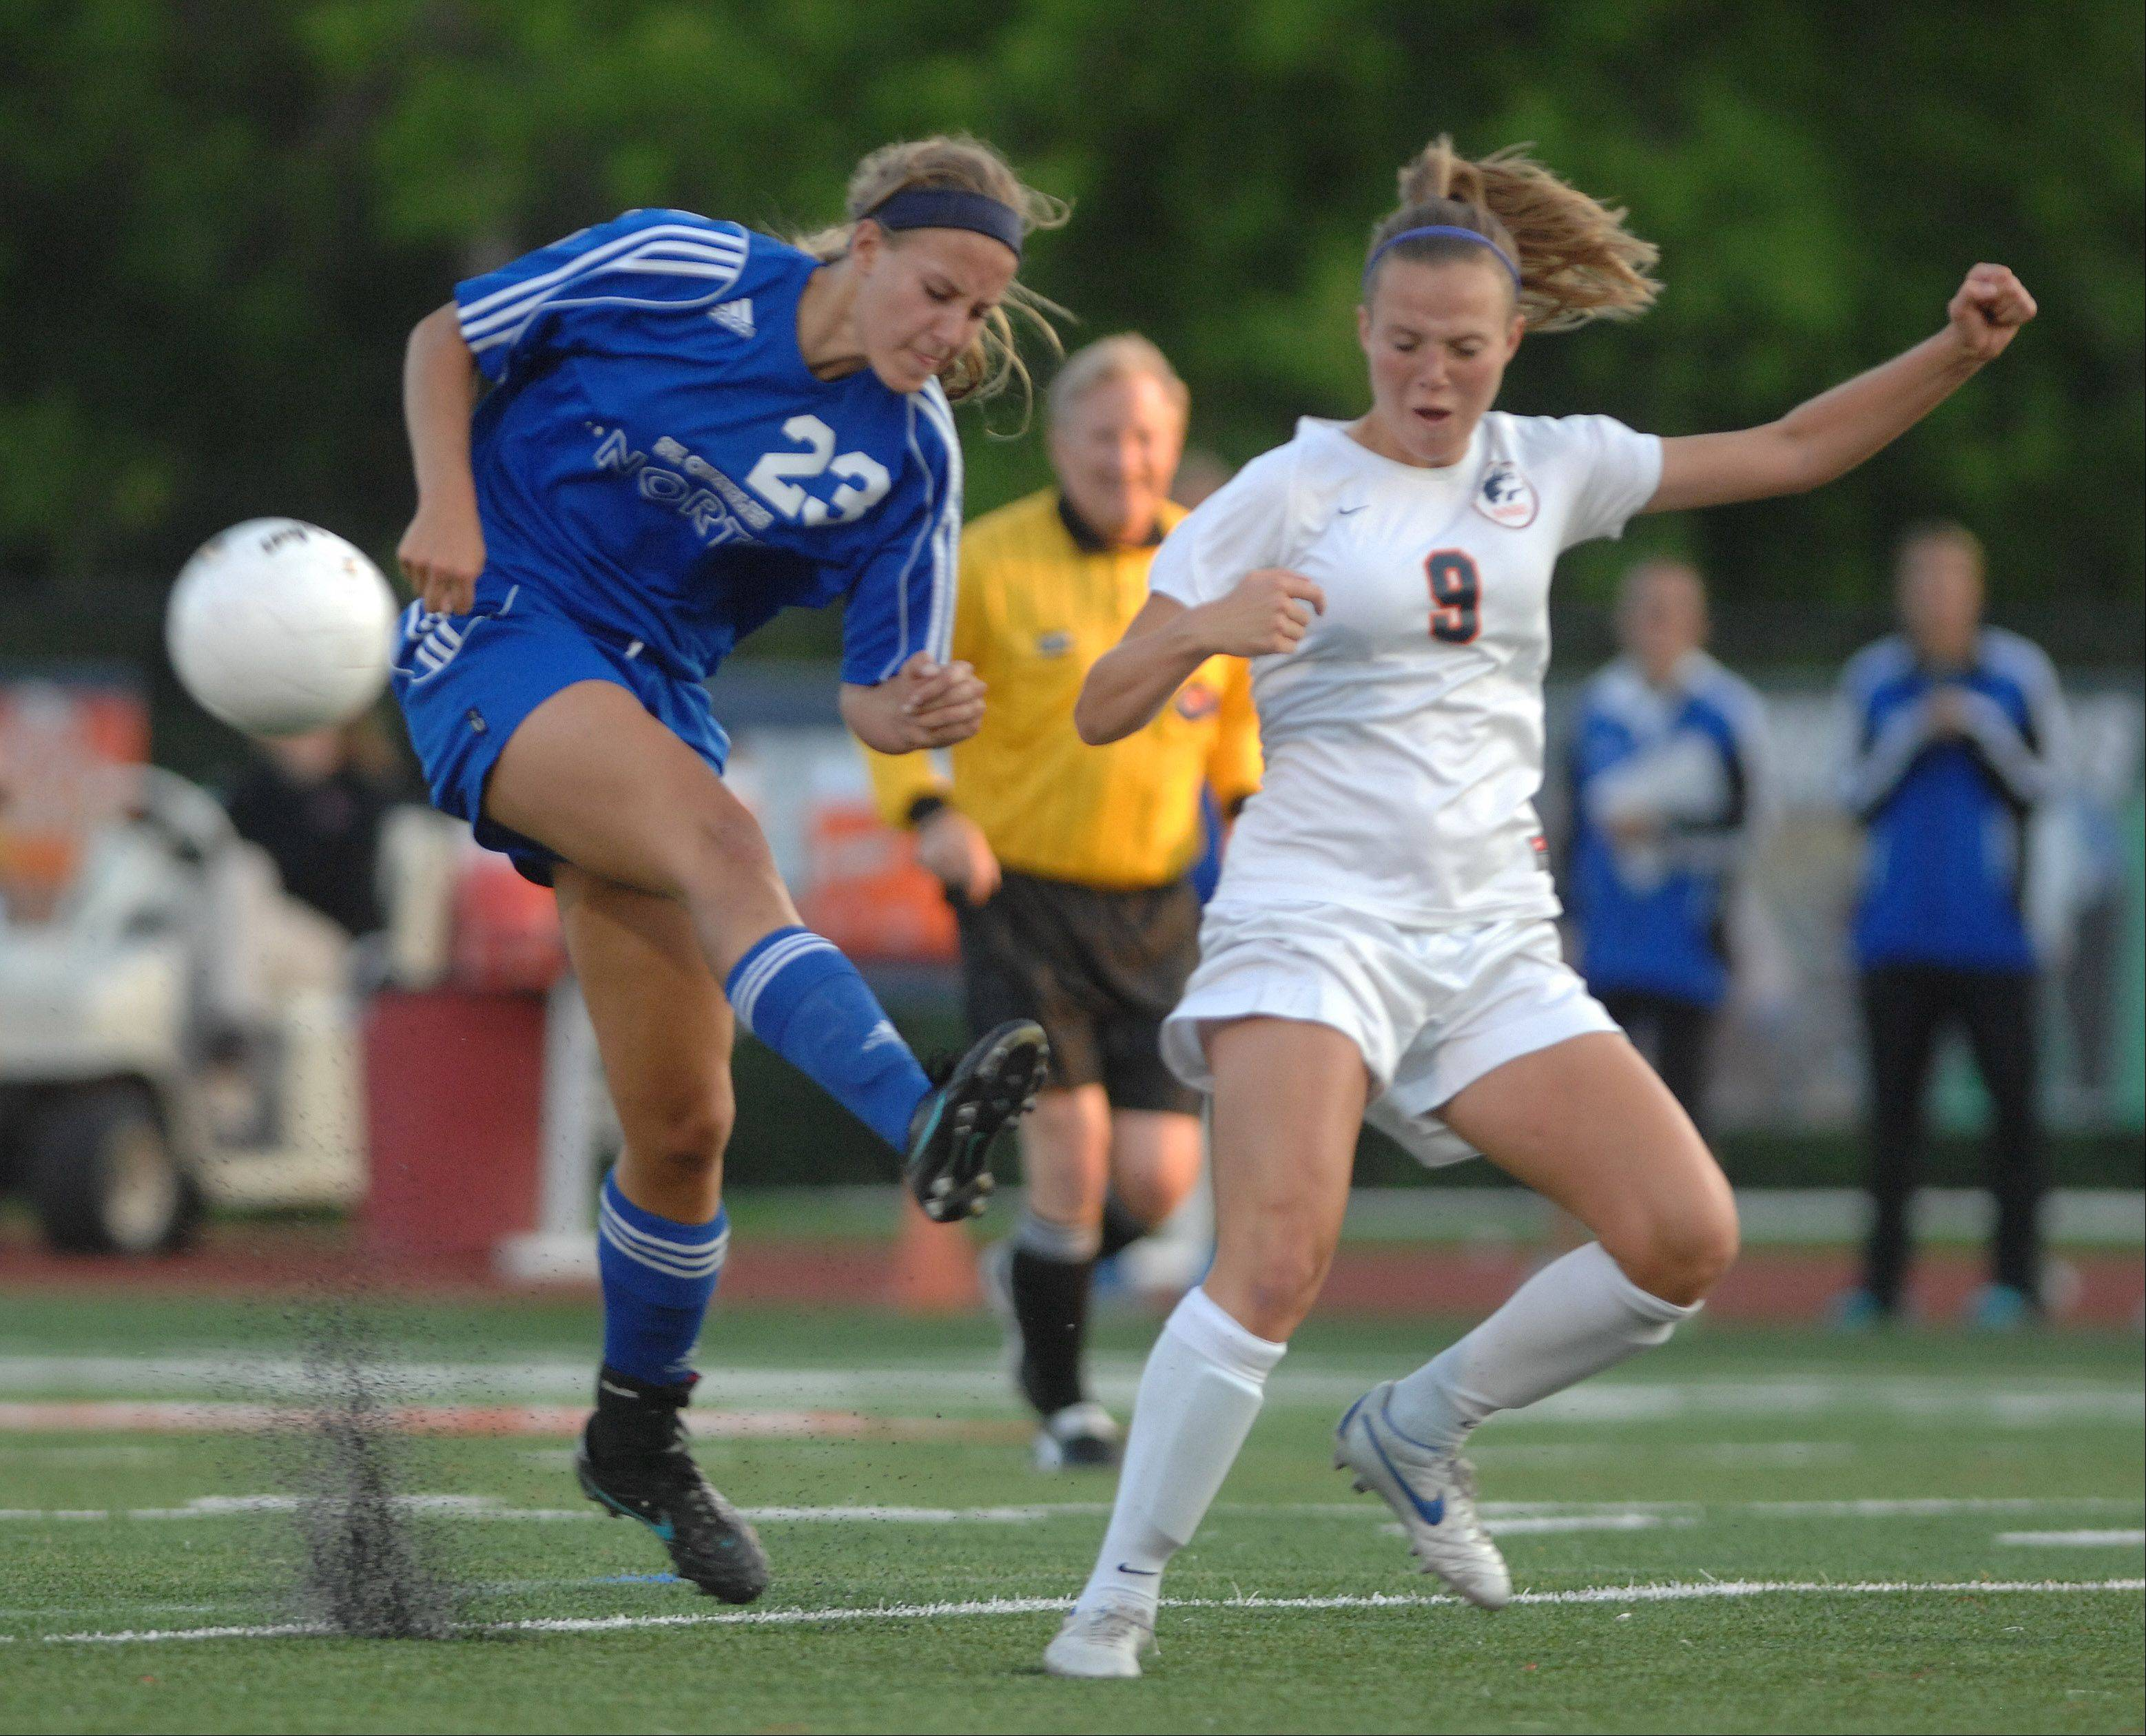 Lauren Koehl of St. Charls North and Jen Korn of Naperville North fight for the ball during the Class 3A girls championship game at North Central College.